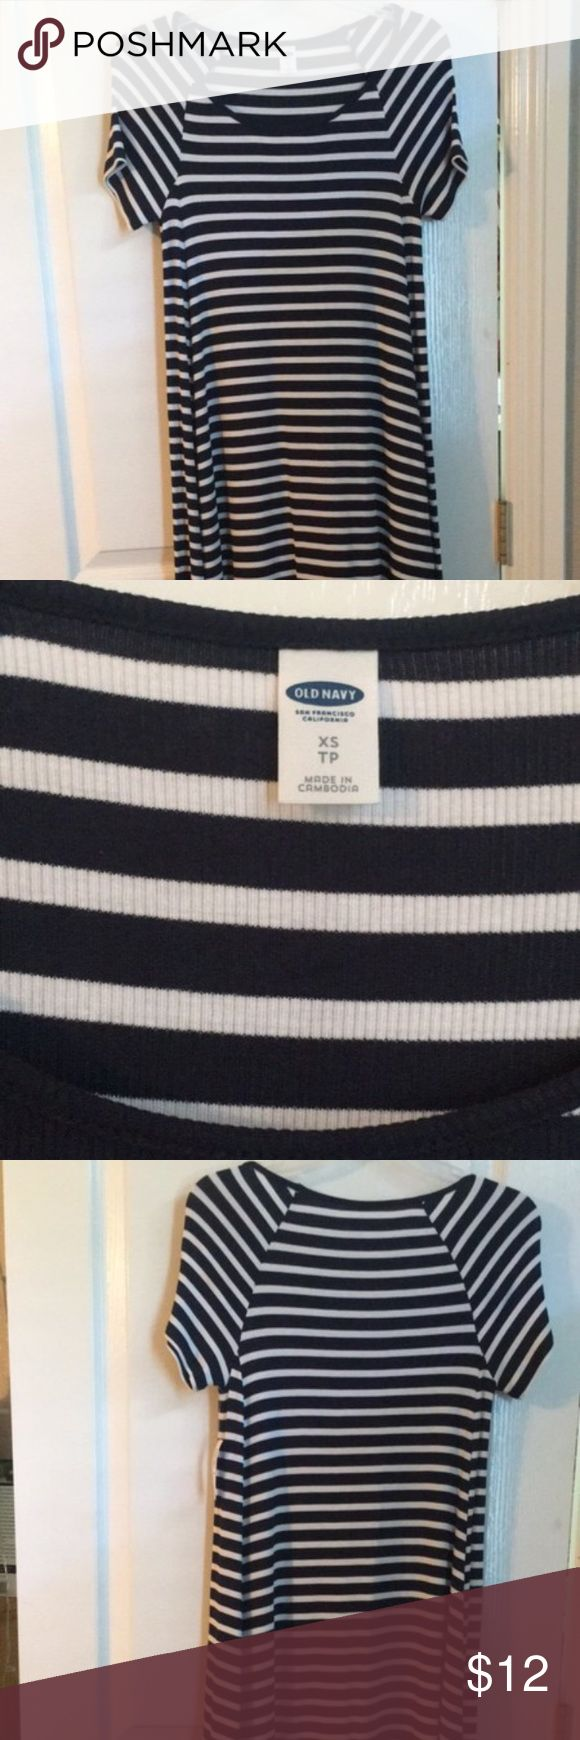 Navy blue and white t shirt dress Super flowy and midi length Old Navy Dresses Midi